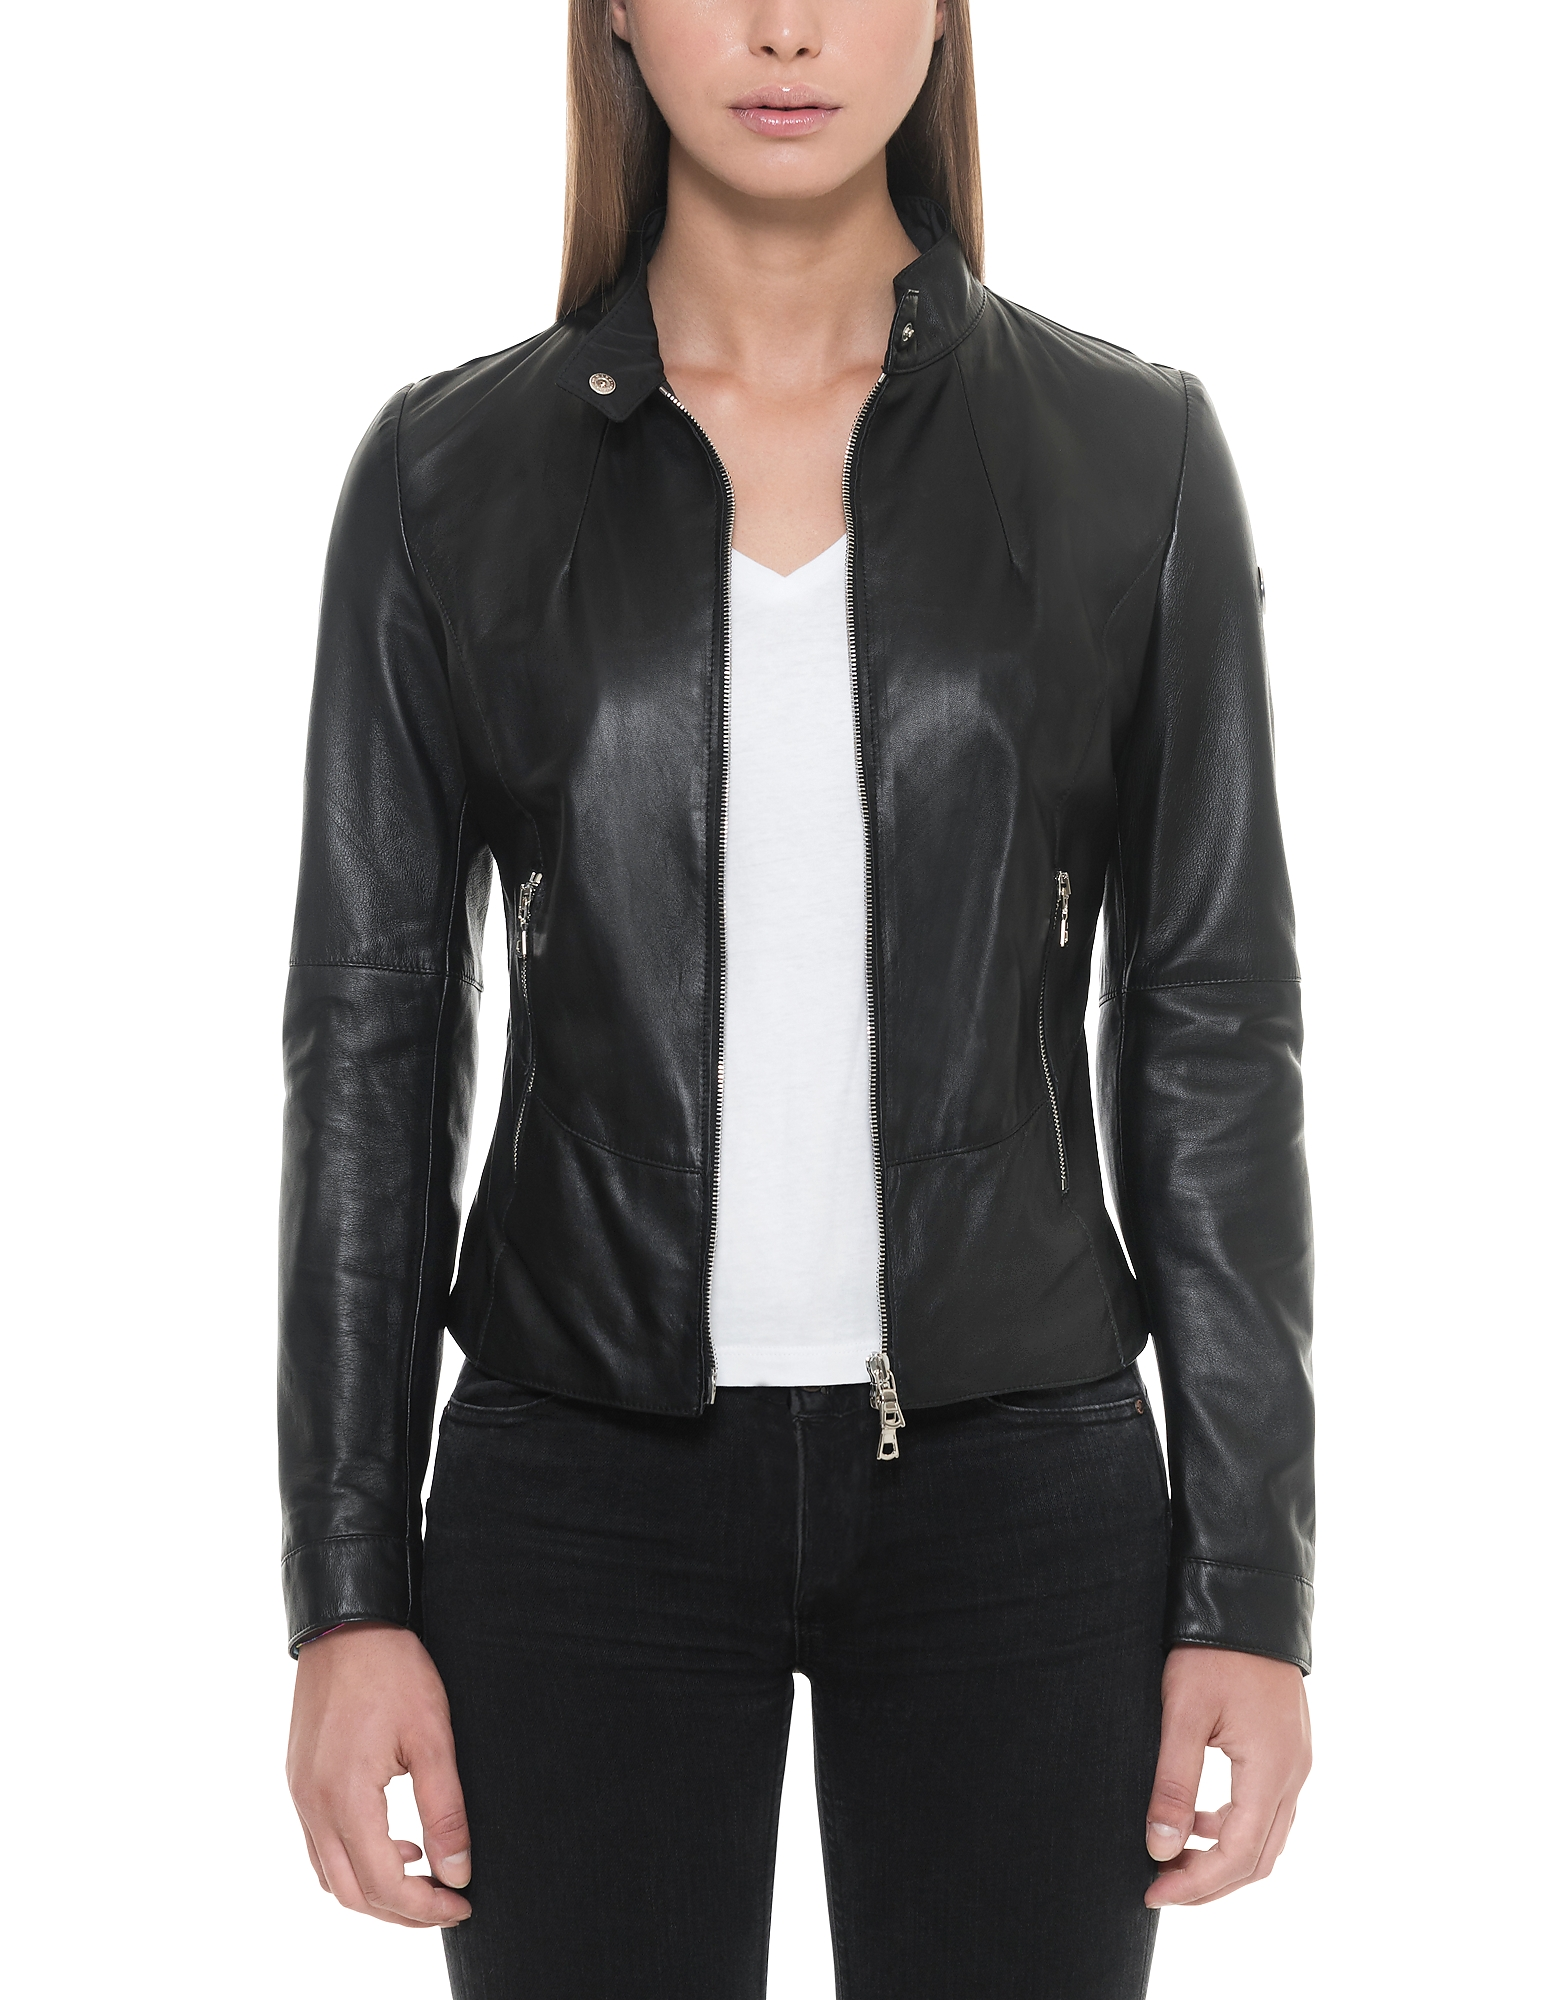 Black Leather Women's Jacket w/Zip Pockets